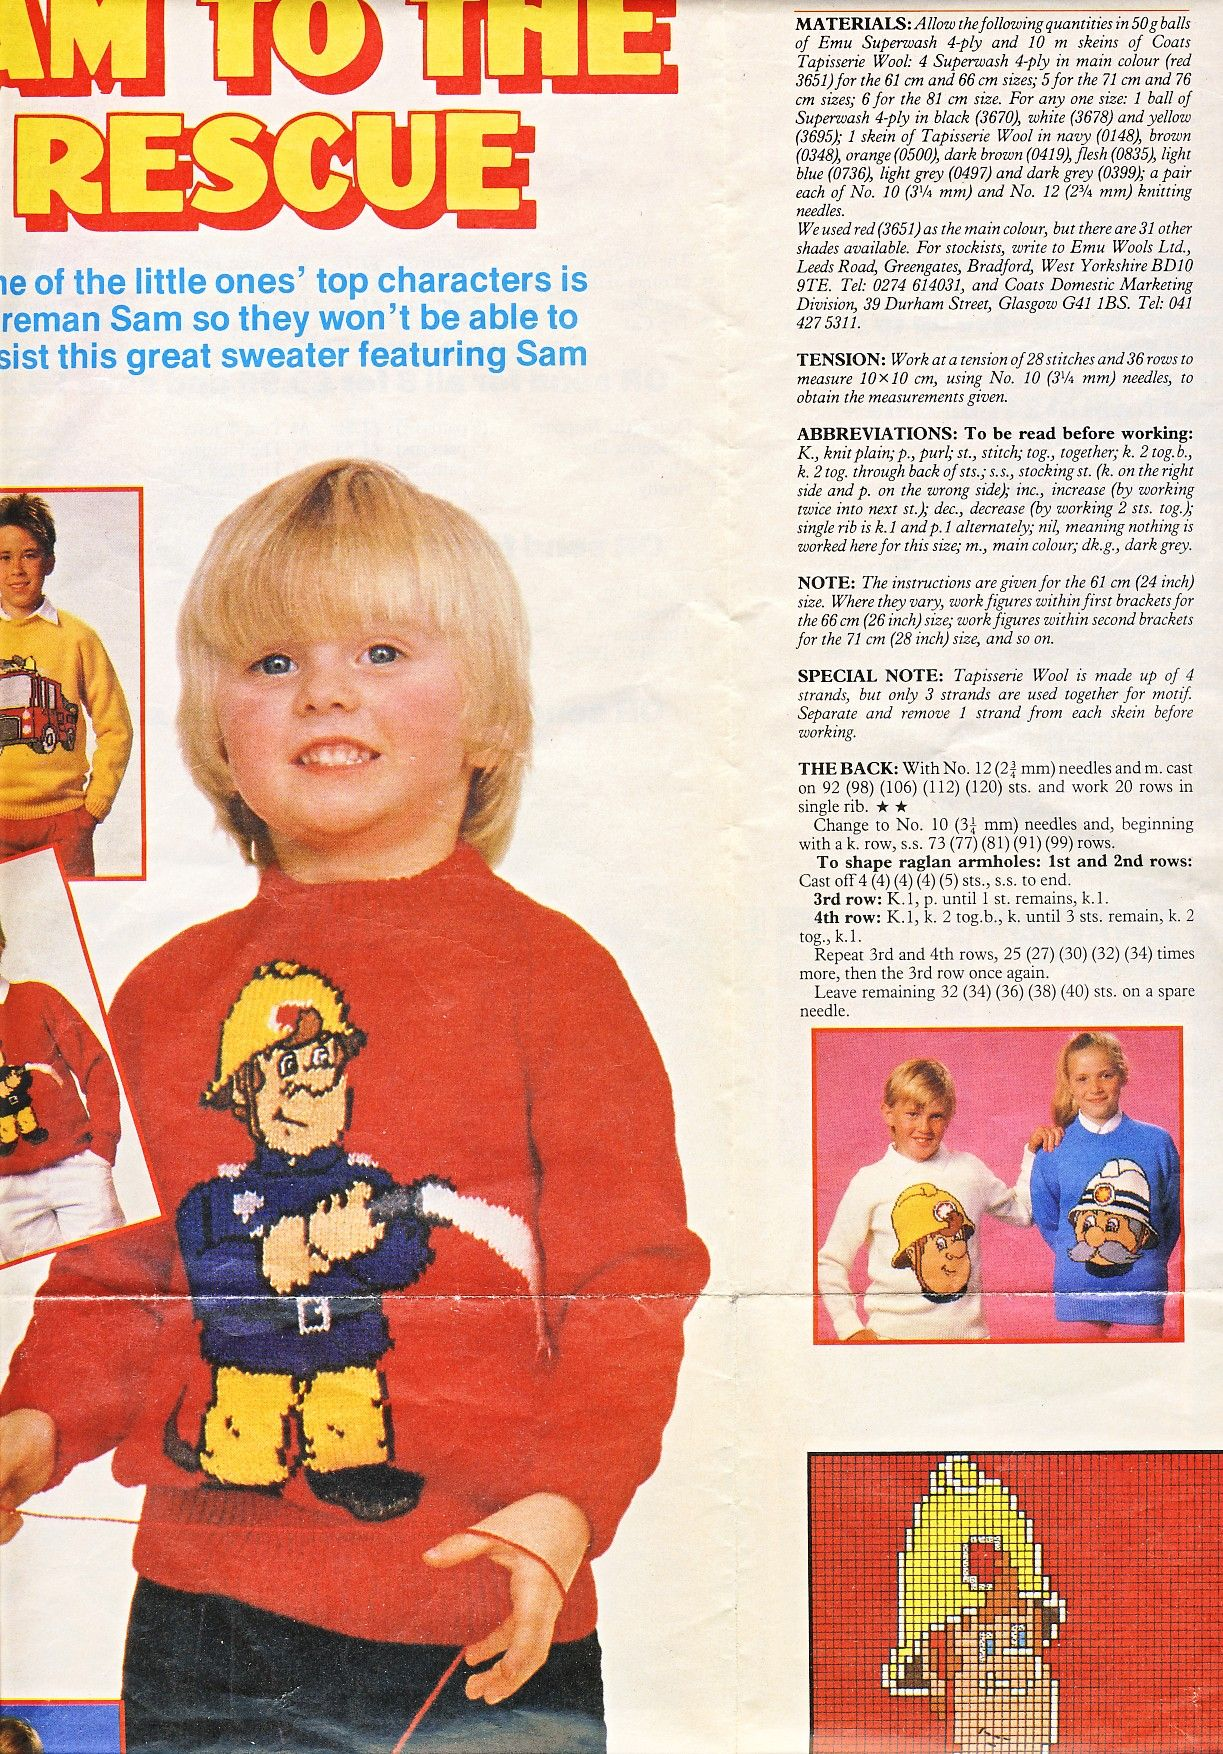 Fireman Sam Knitting Pattern Womans Weekly Pull Out Unlisted